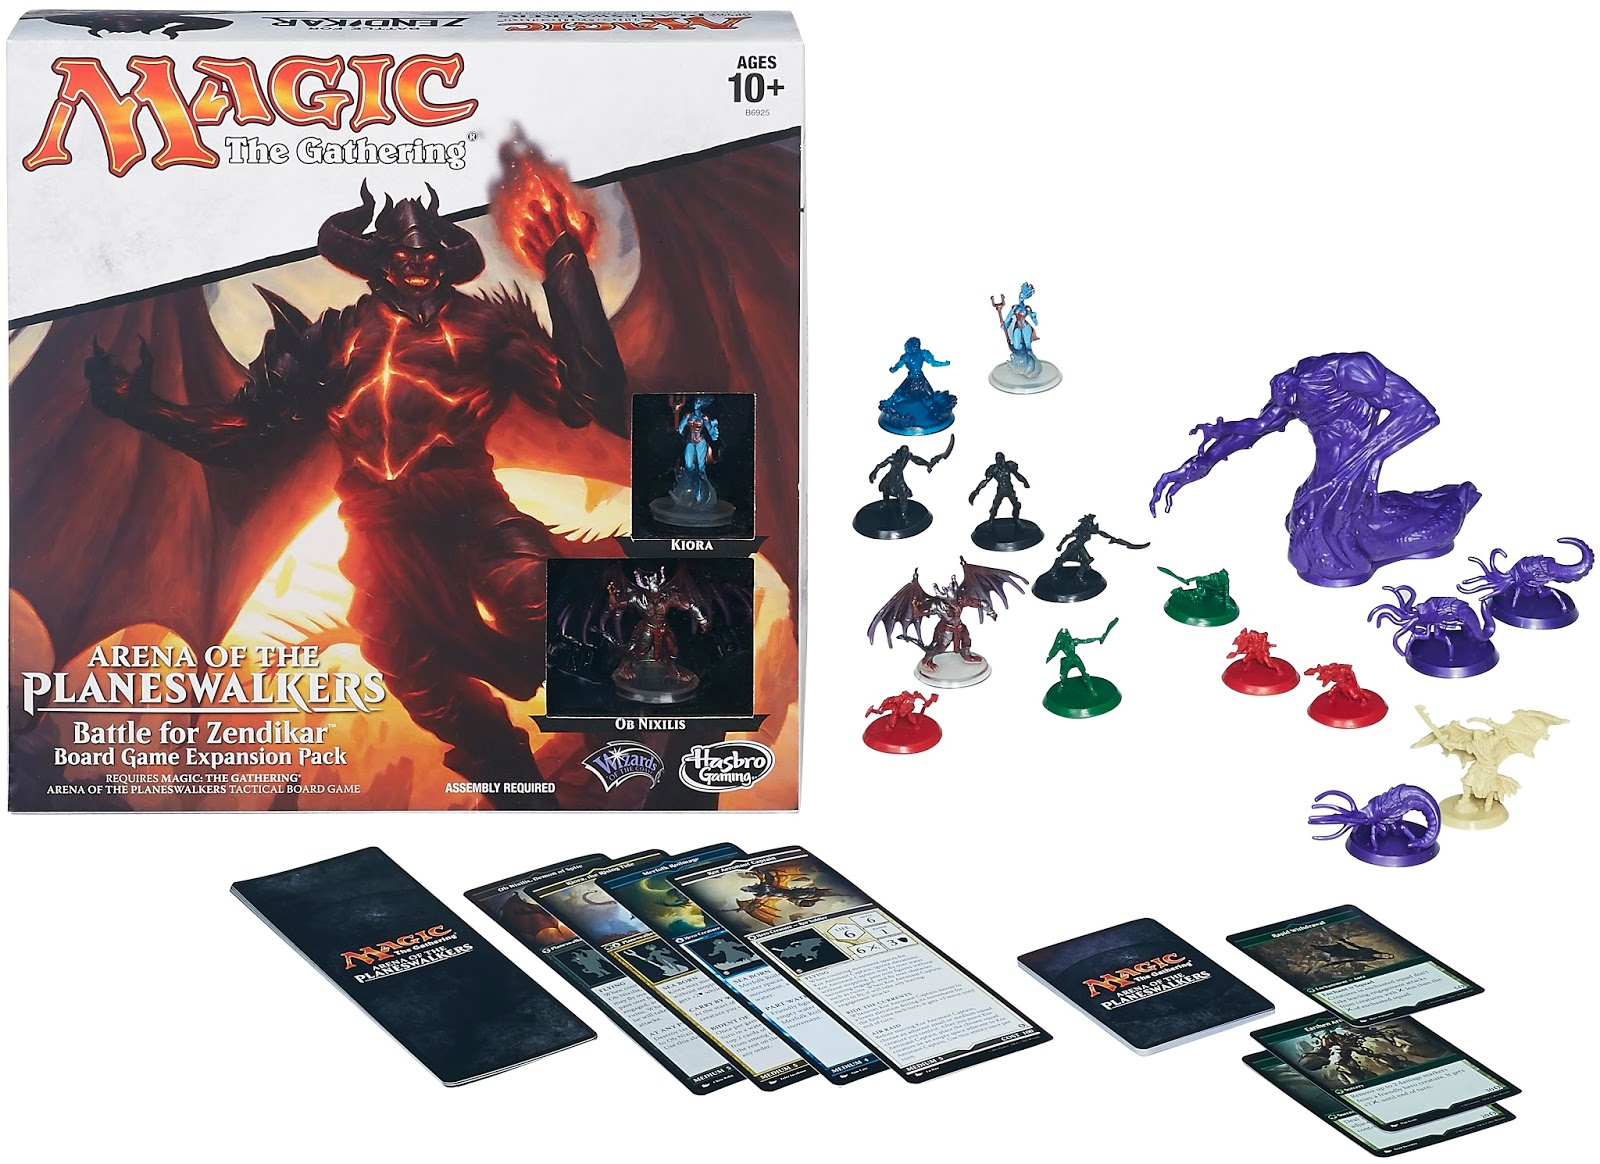 ACD Distribution Newsline: New from Hasbro and Wizards of ... Planeswalker Arena Expansion